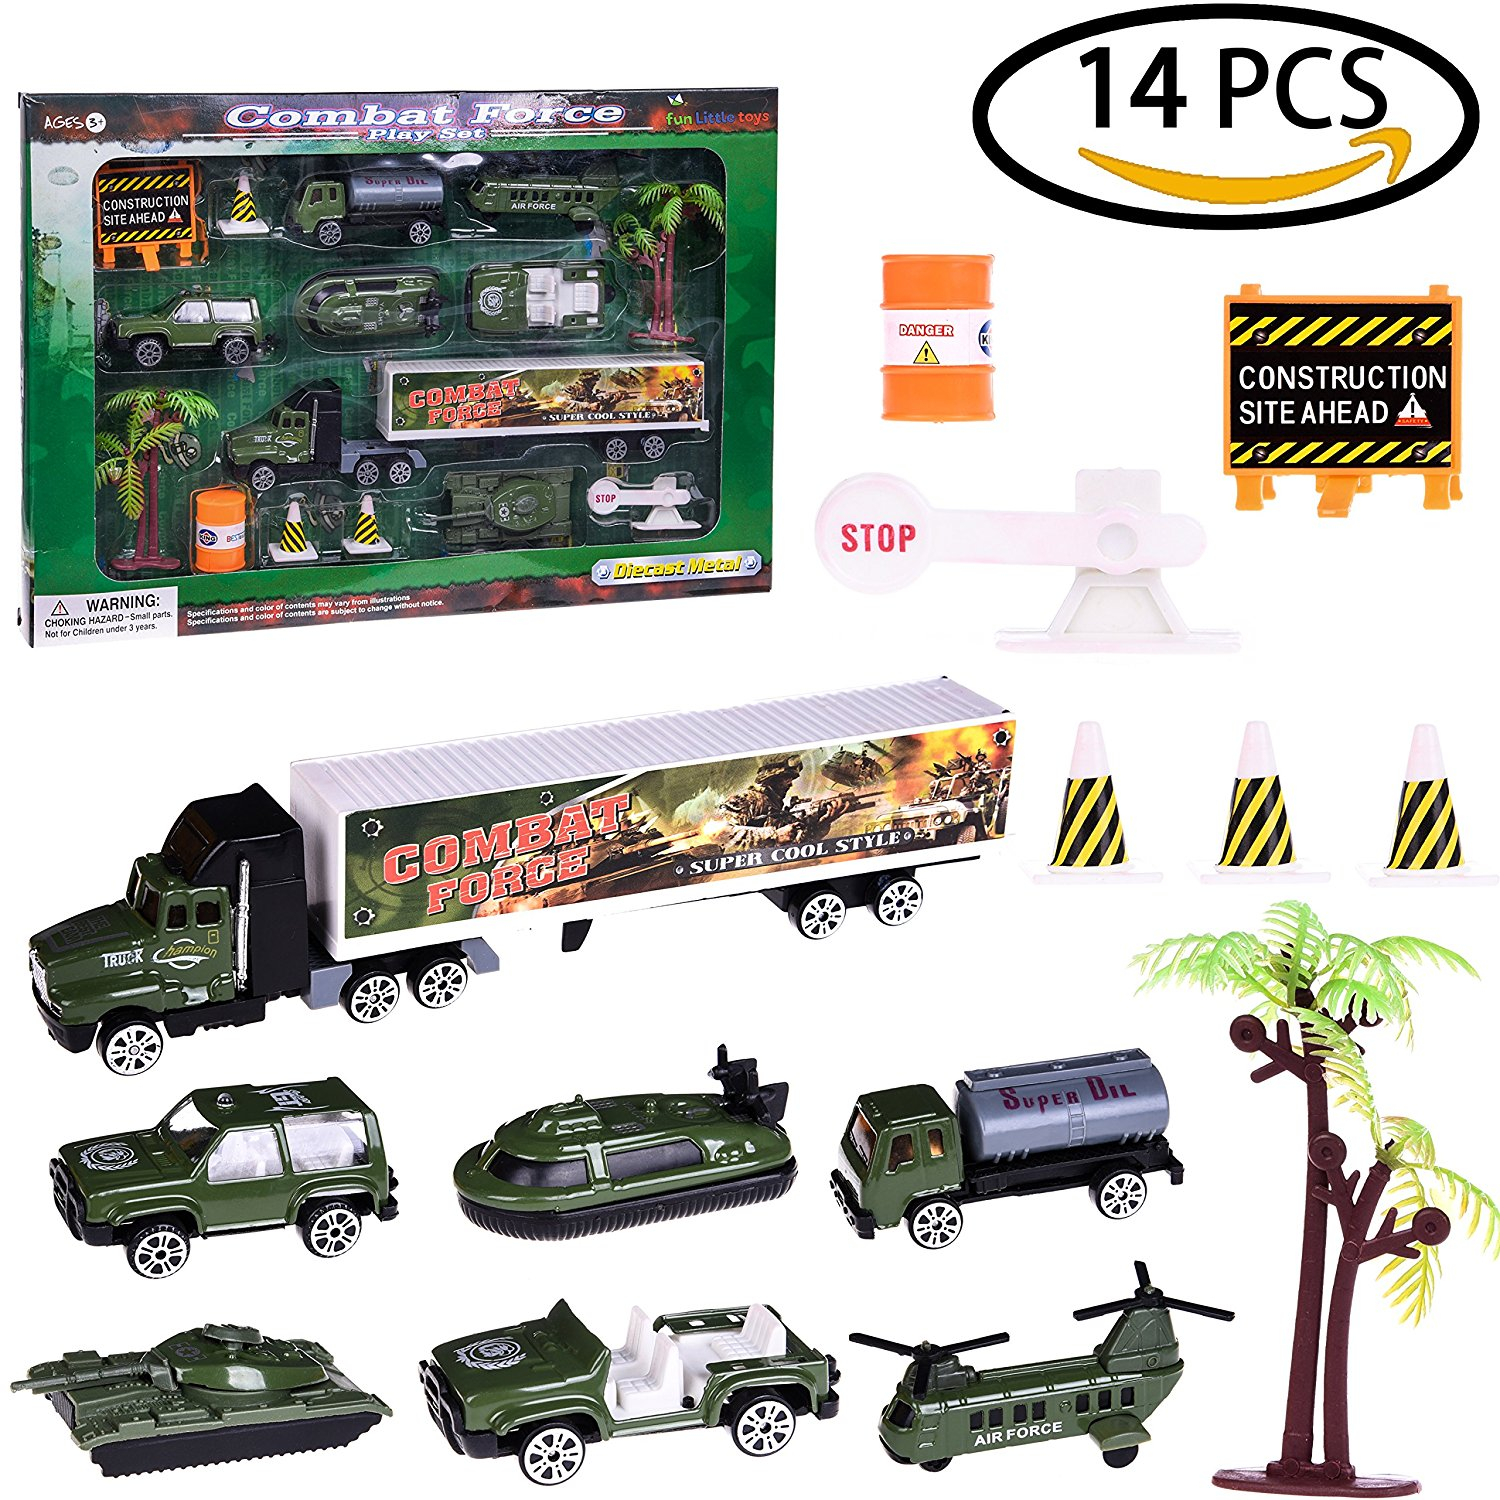 Boy's Army Man Military Soldiers Truck Hero Role Play Action Diecast Vehicle Play Set for Party Favors with Tank, Truck, SUV, Helicopter, Plane and Accessories 15 PCs